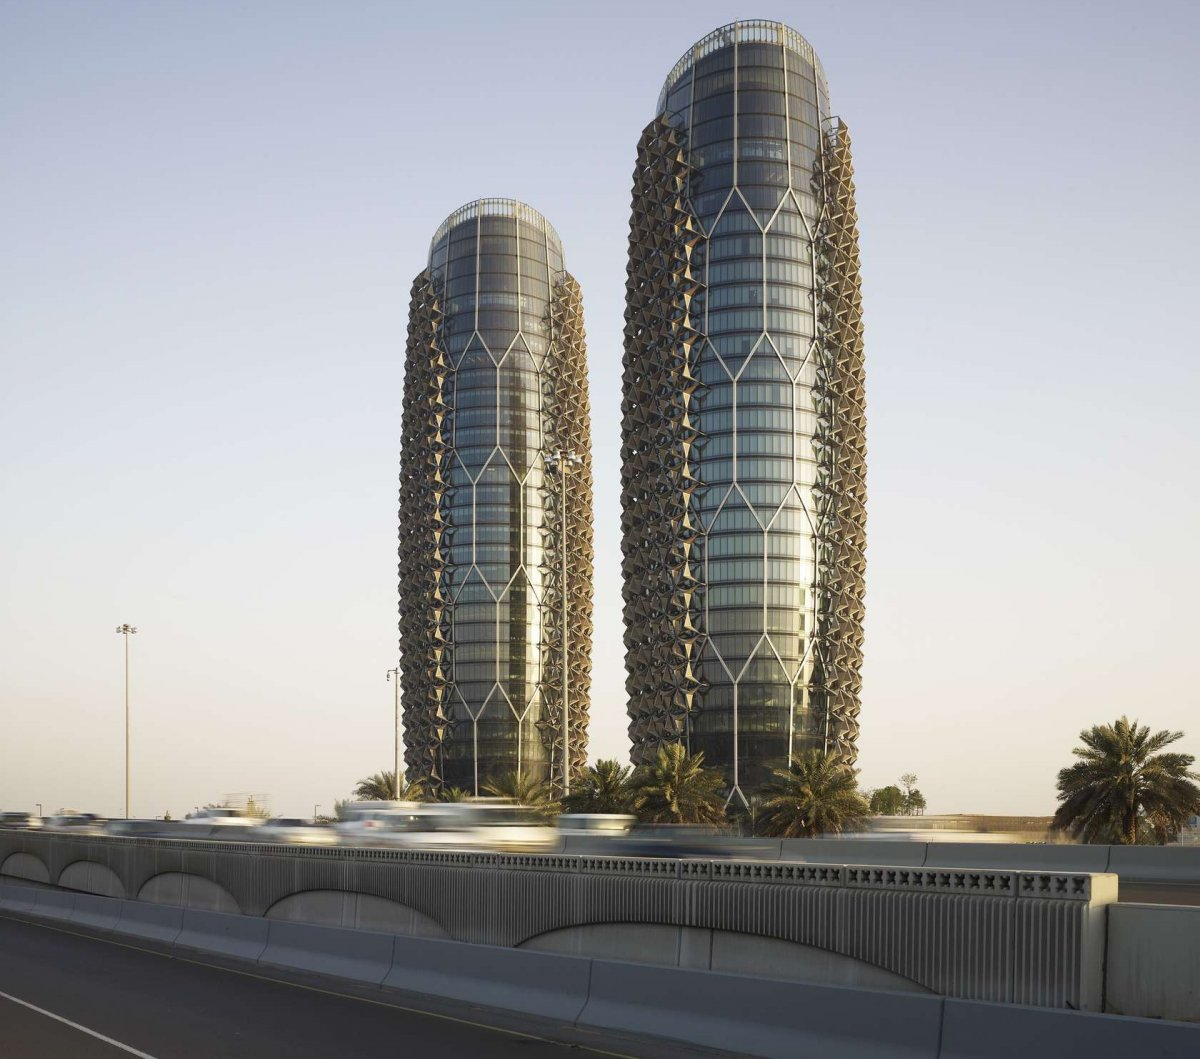 al-bahr-towers-abu-dhabi